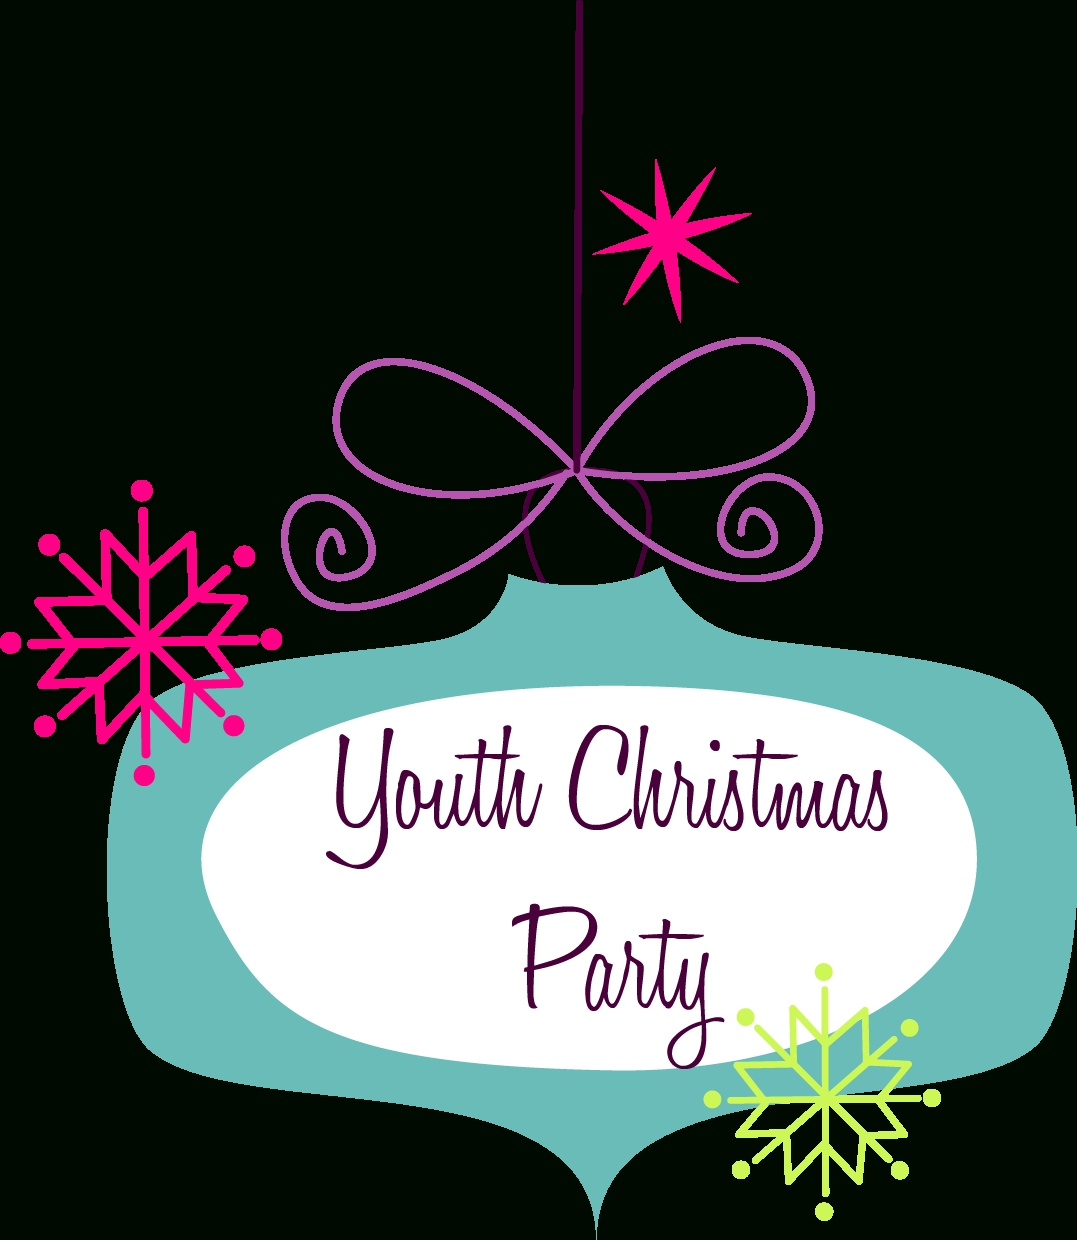 10 Best Youth Group Christmas Party Ideas christmas ideas for youth at church party relief society christmas 2020